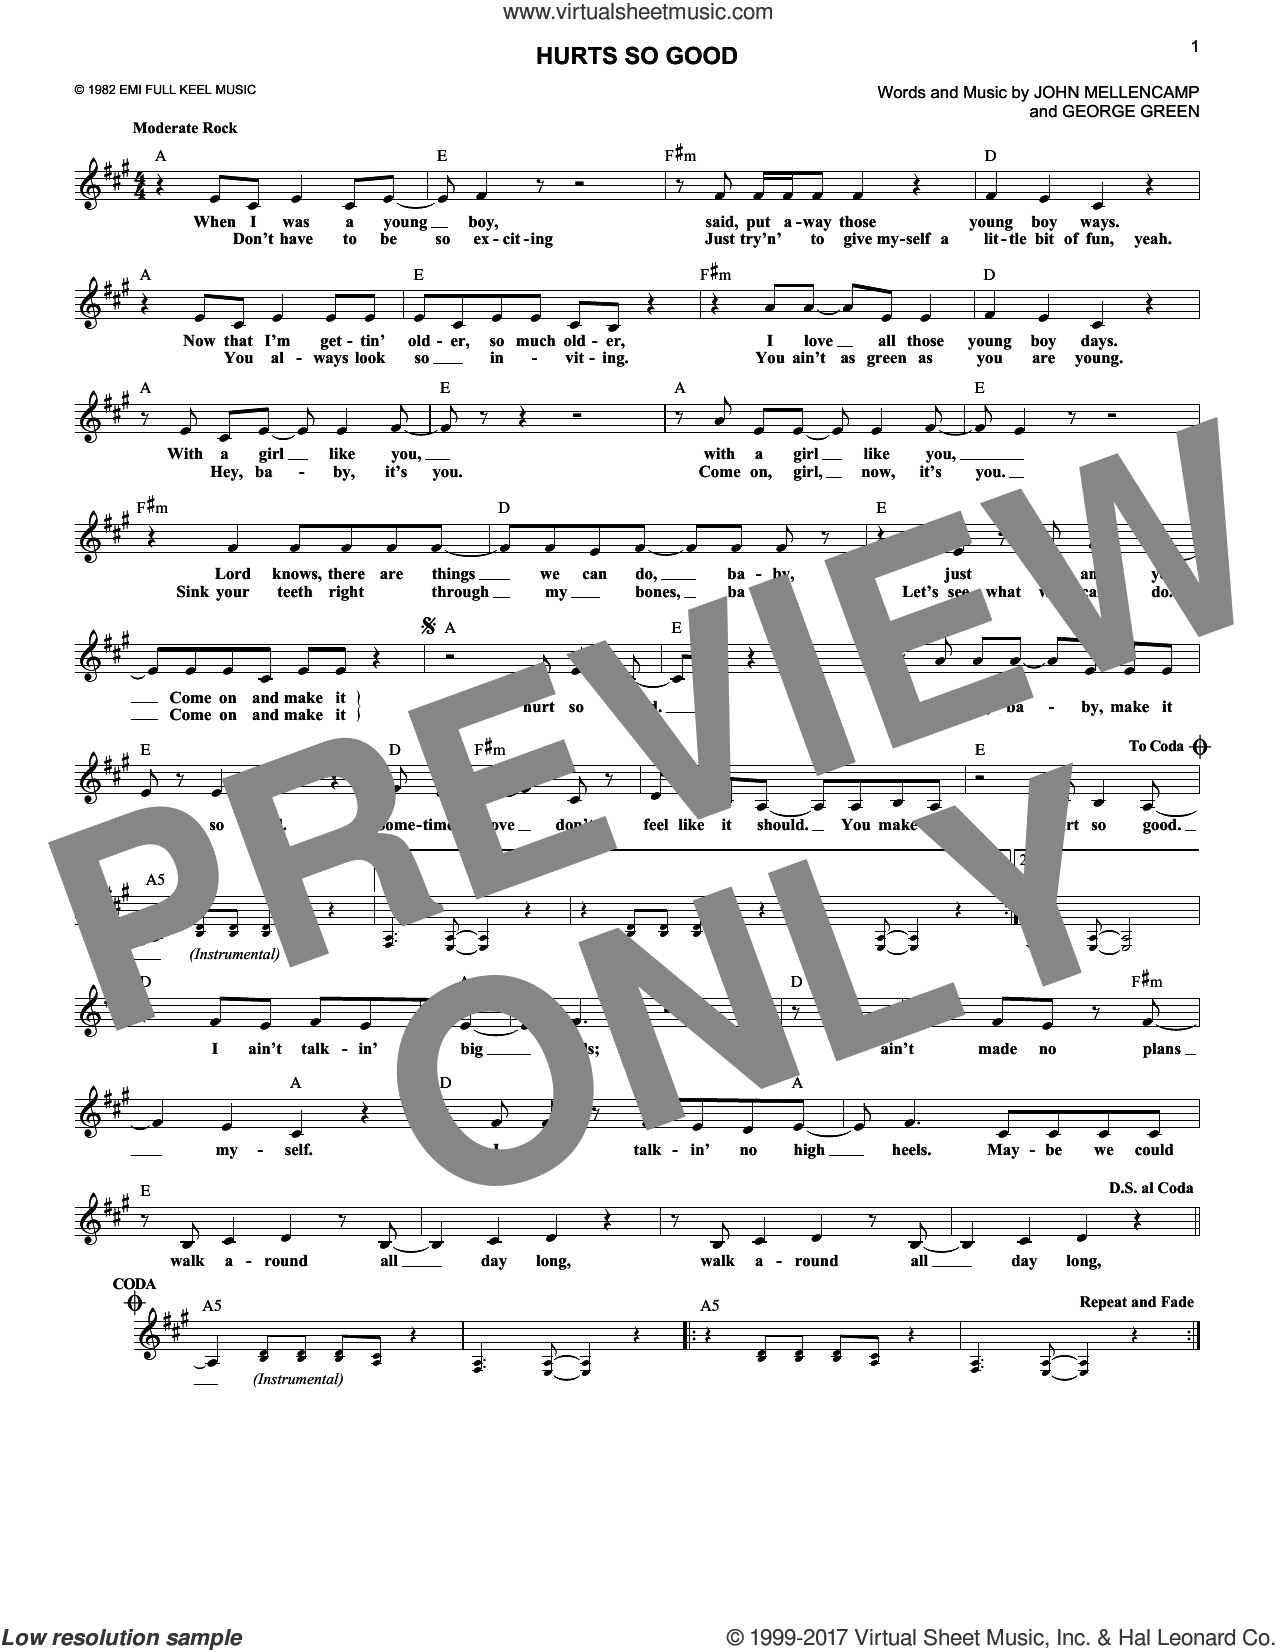 Hurts So Good sheet music for voice and other instruments (fake book) by George Green and John Mellencamp. Score Image Preview.